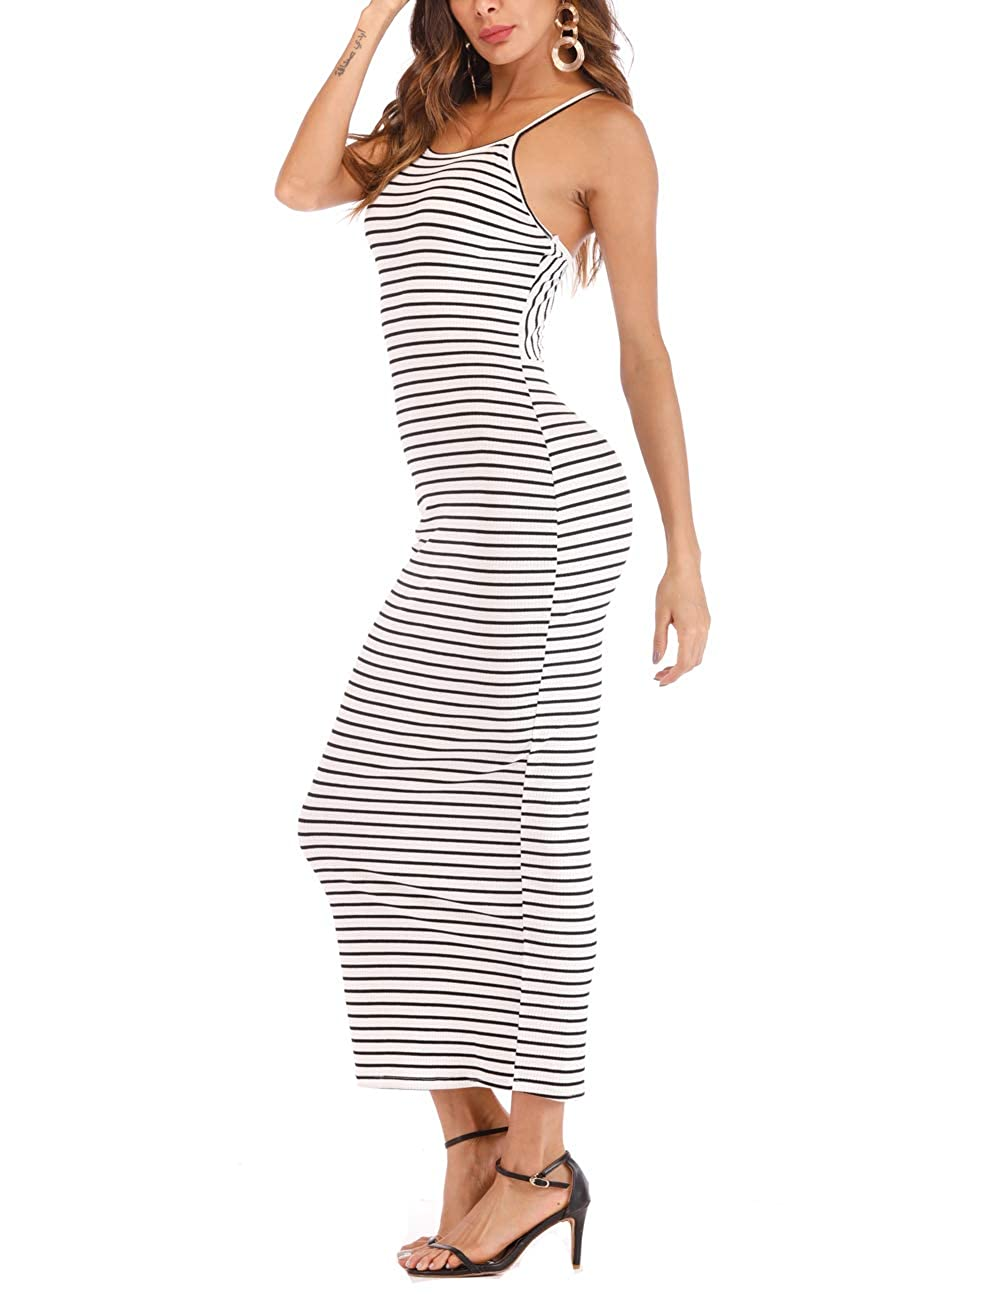 Black&white Stripe Haola Womens Sexy Club Dress Stripe Backless Sleeveless Bodycon Party Casual Long Dresses